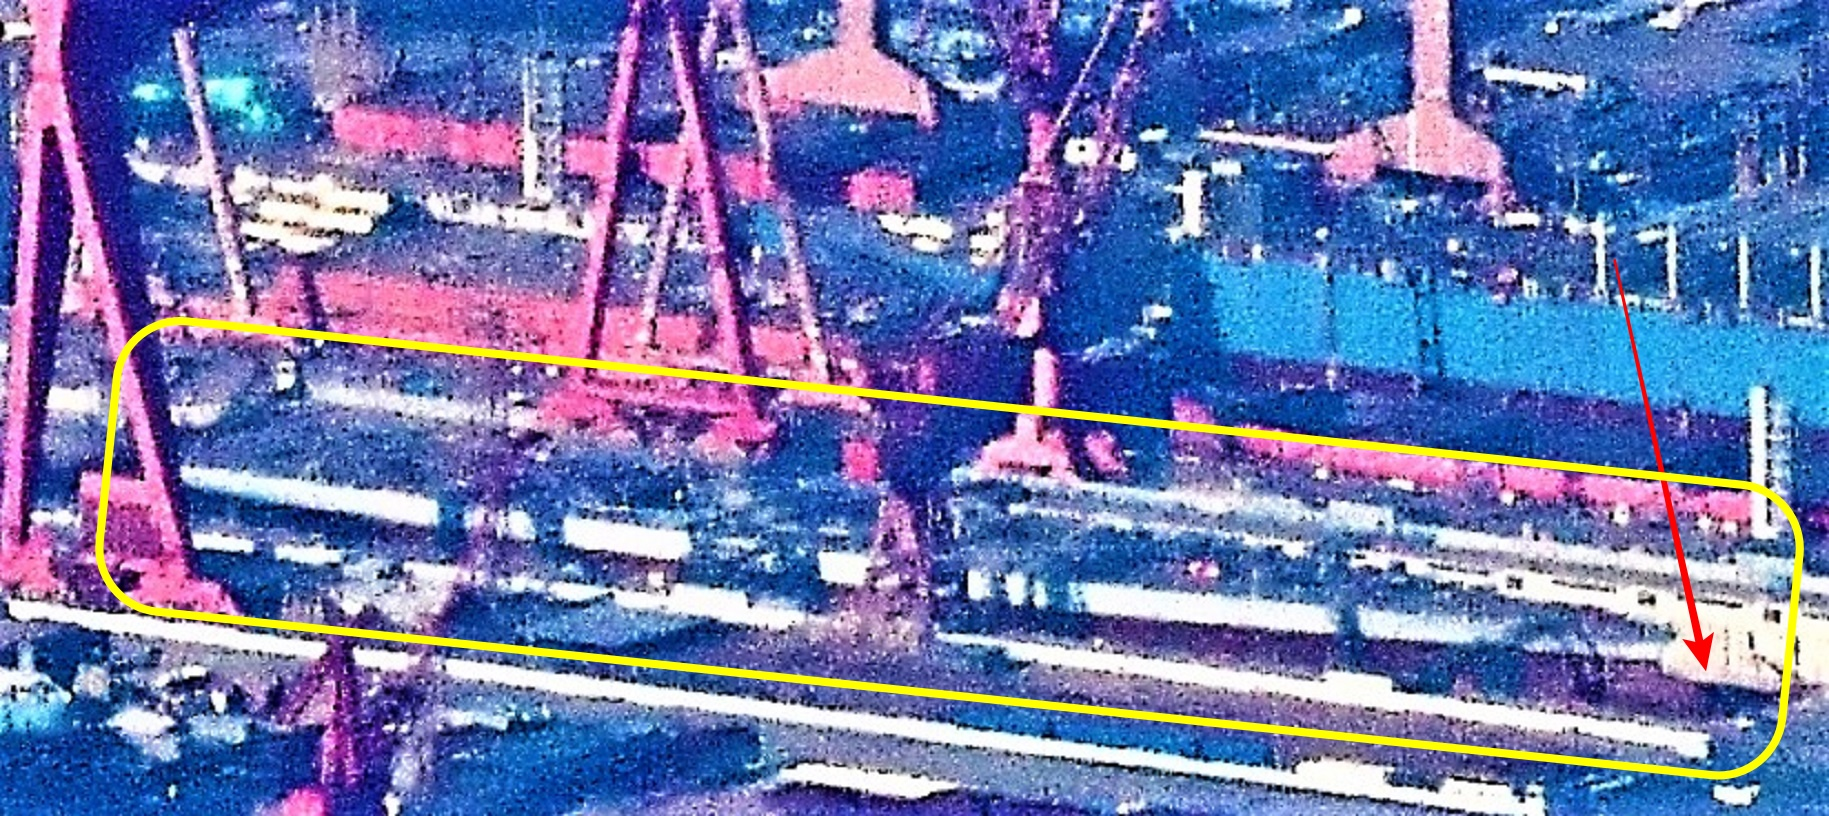 Type 003 carrier uploaded 20201205 with marking.jpg